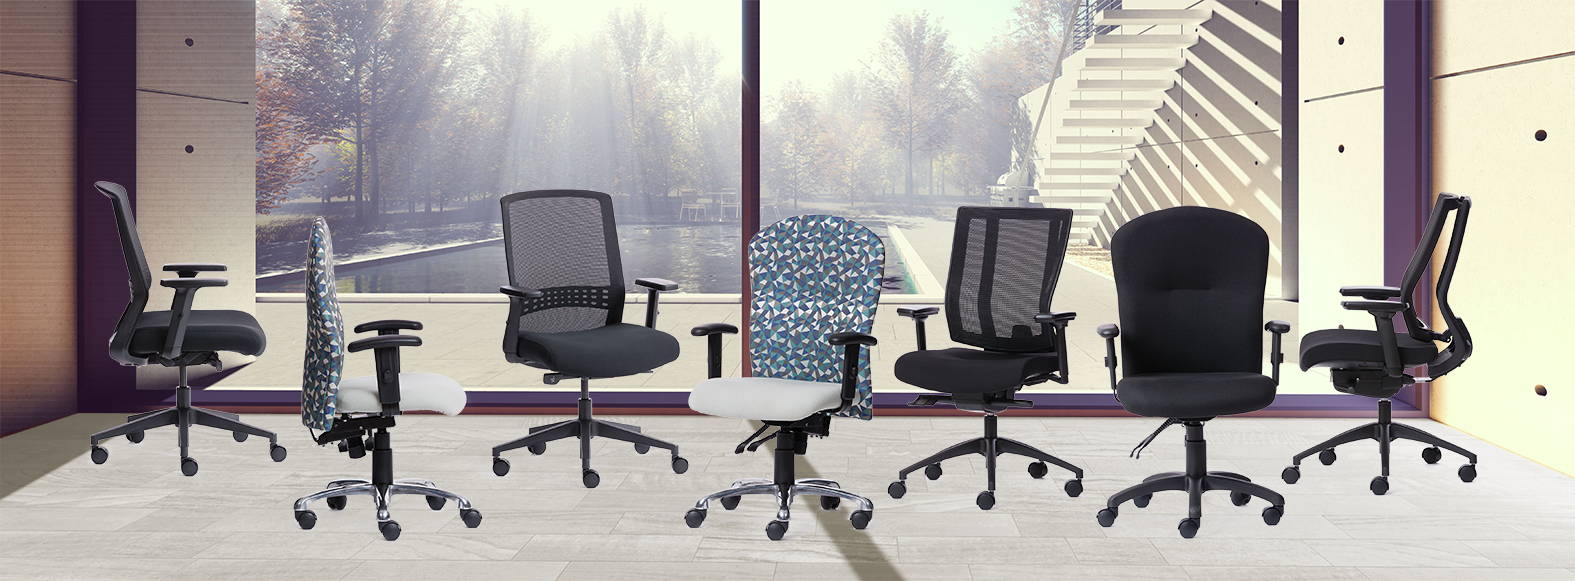 Ergonomic Orthopaedic chairs